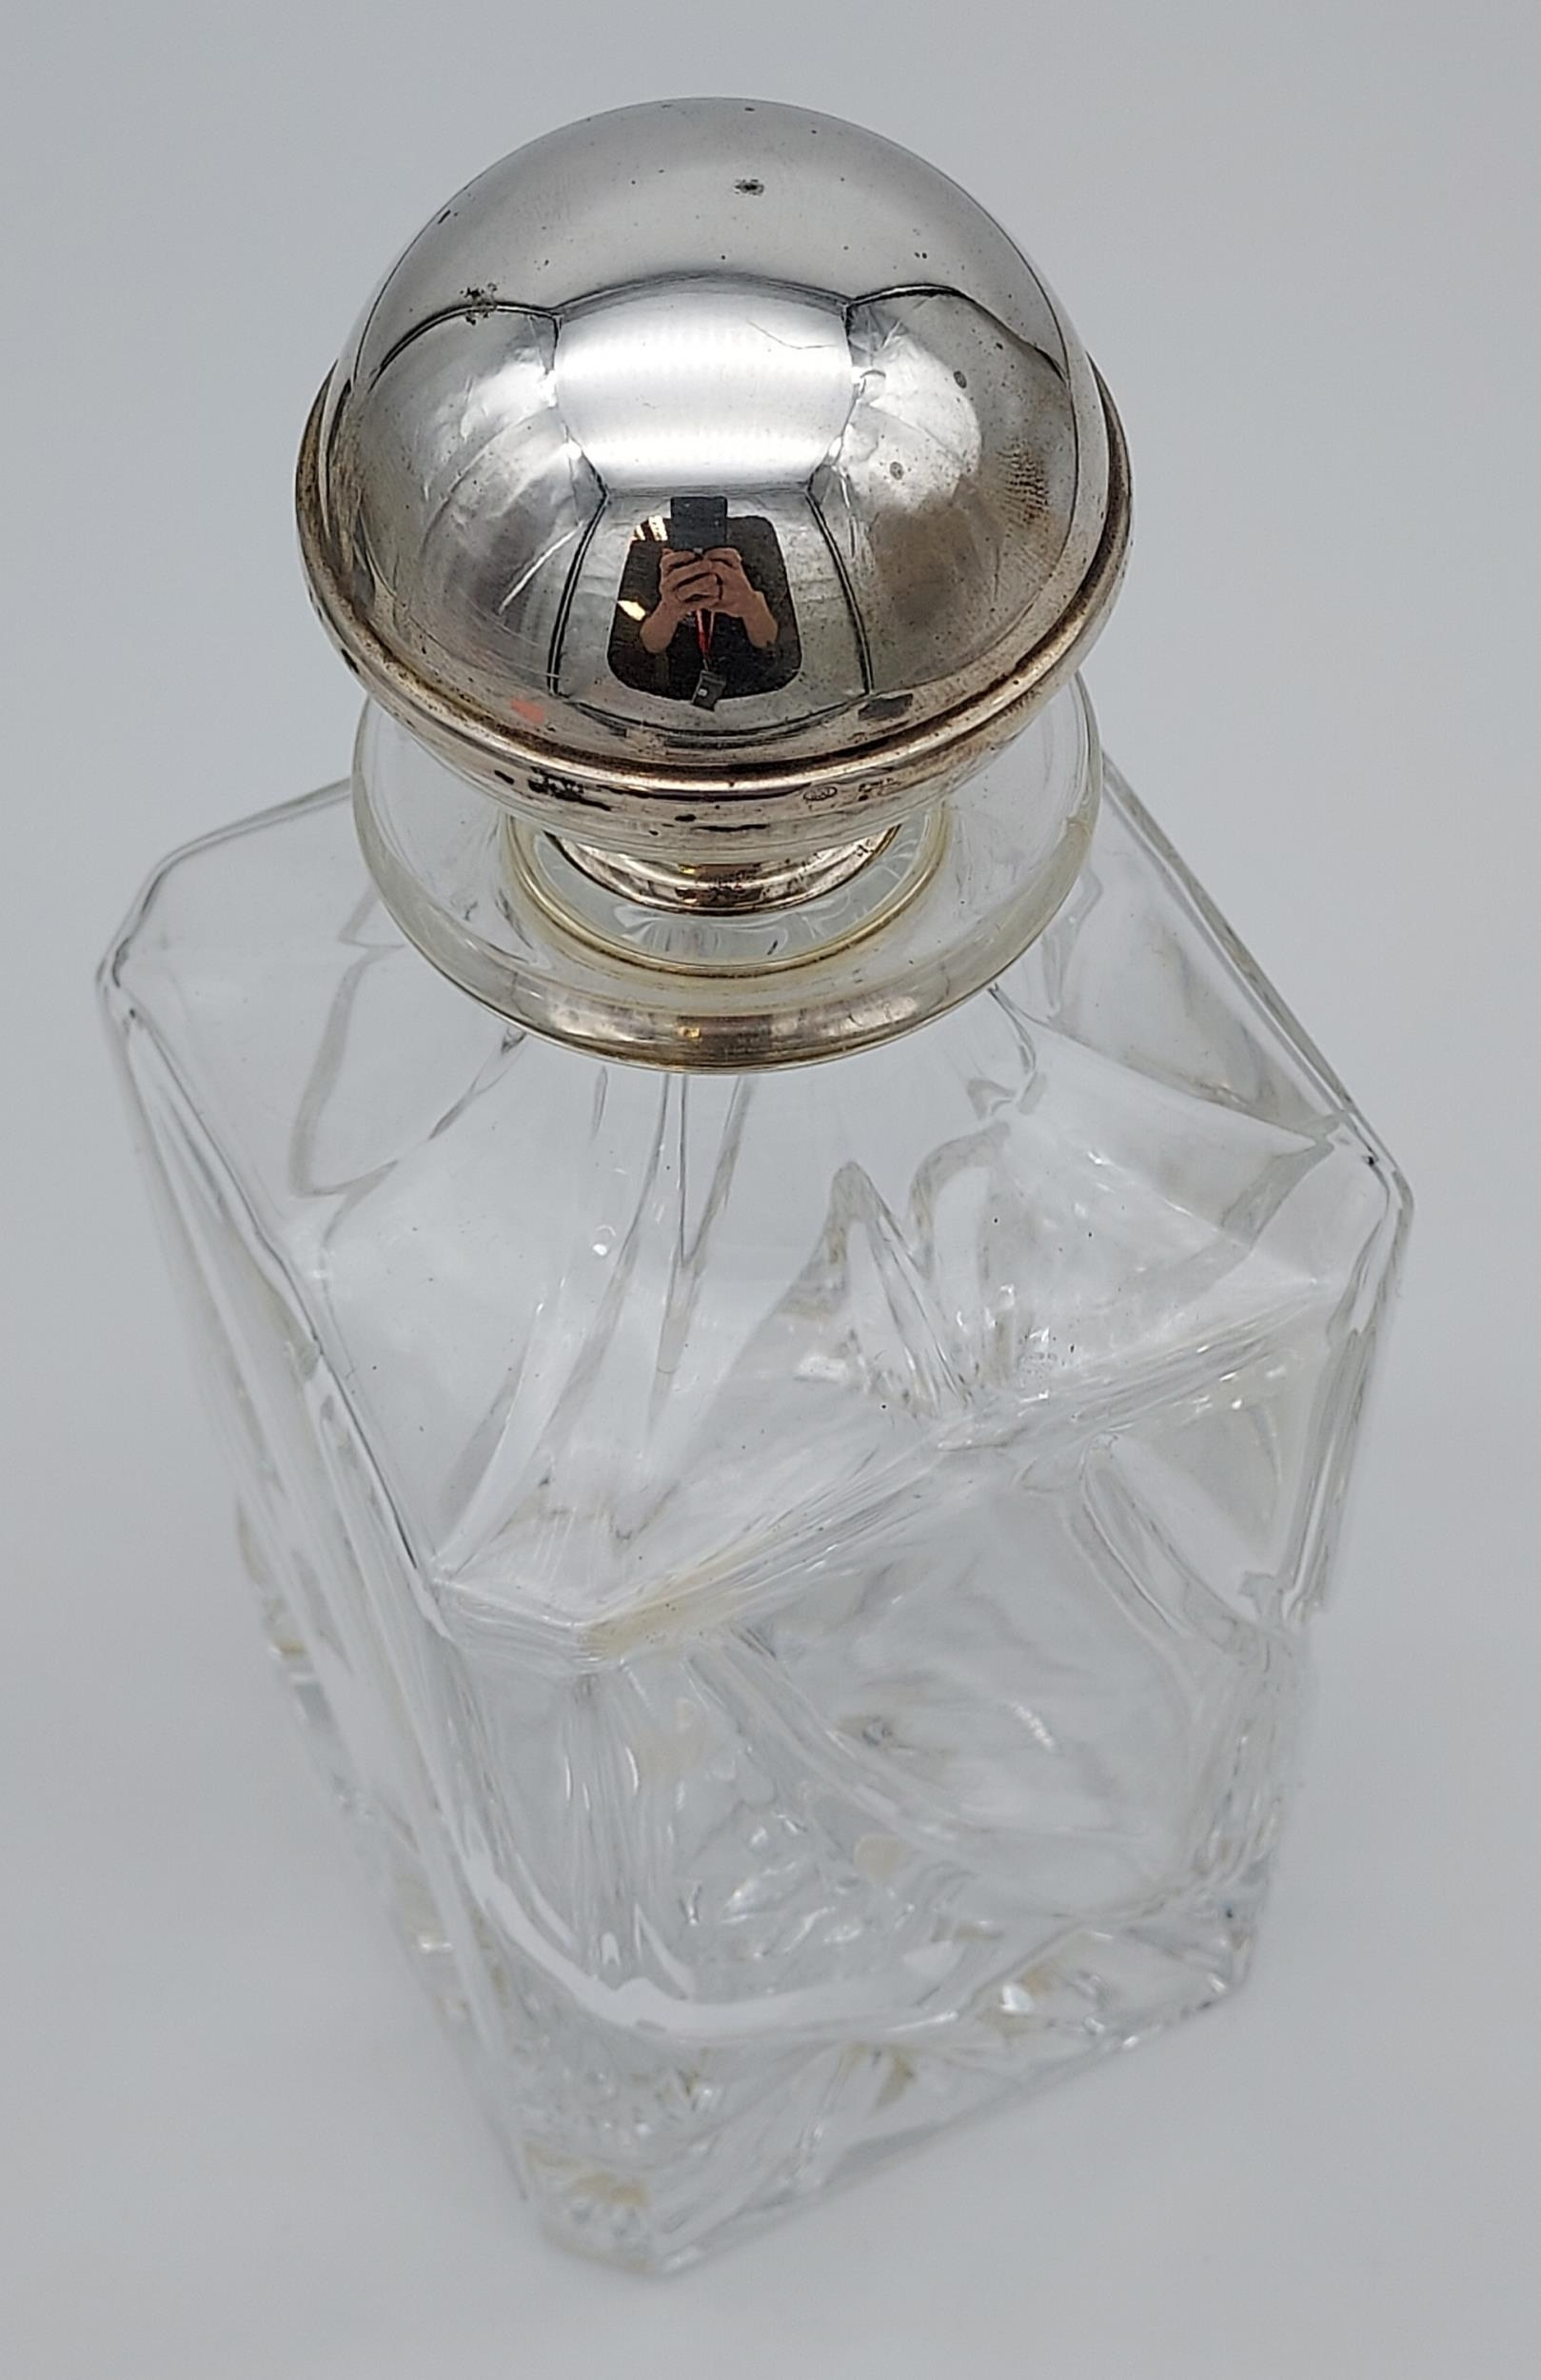 Crystal decanter with a 800 grade silver stopper, with 6 matching drinks glasses with silver - Image 8 of 8